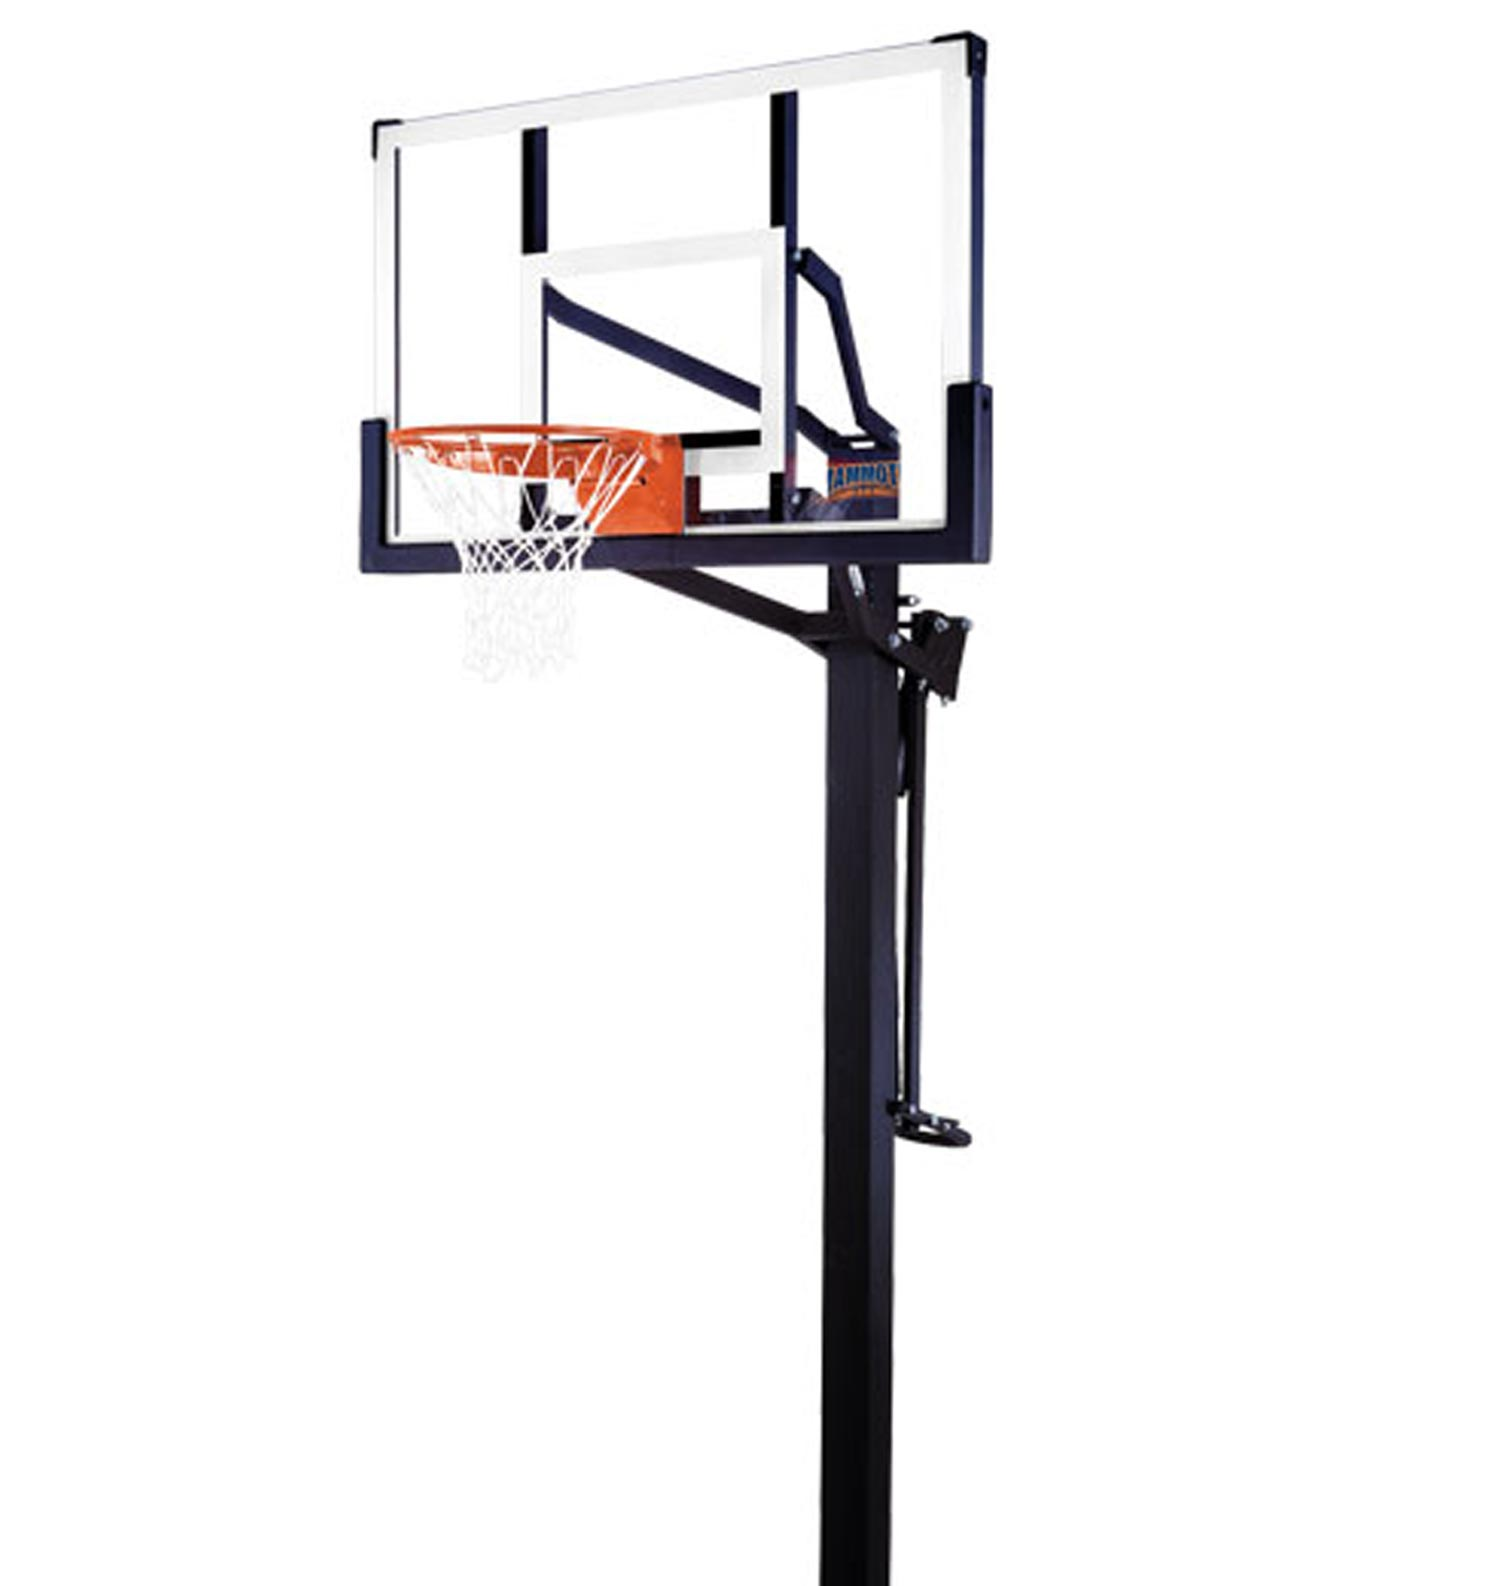 1500x1586 Basketball Hoop Png Hd Transparent Basketball Hoop Hd.png Images